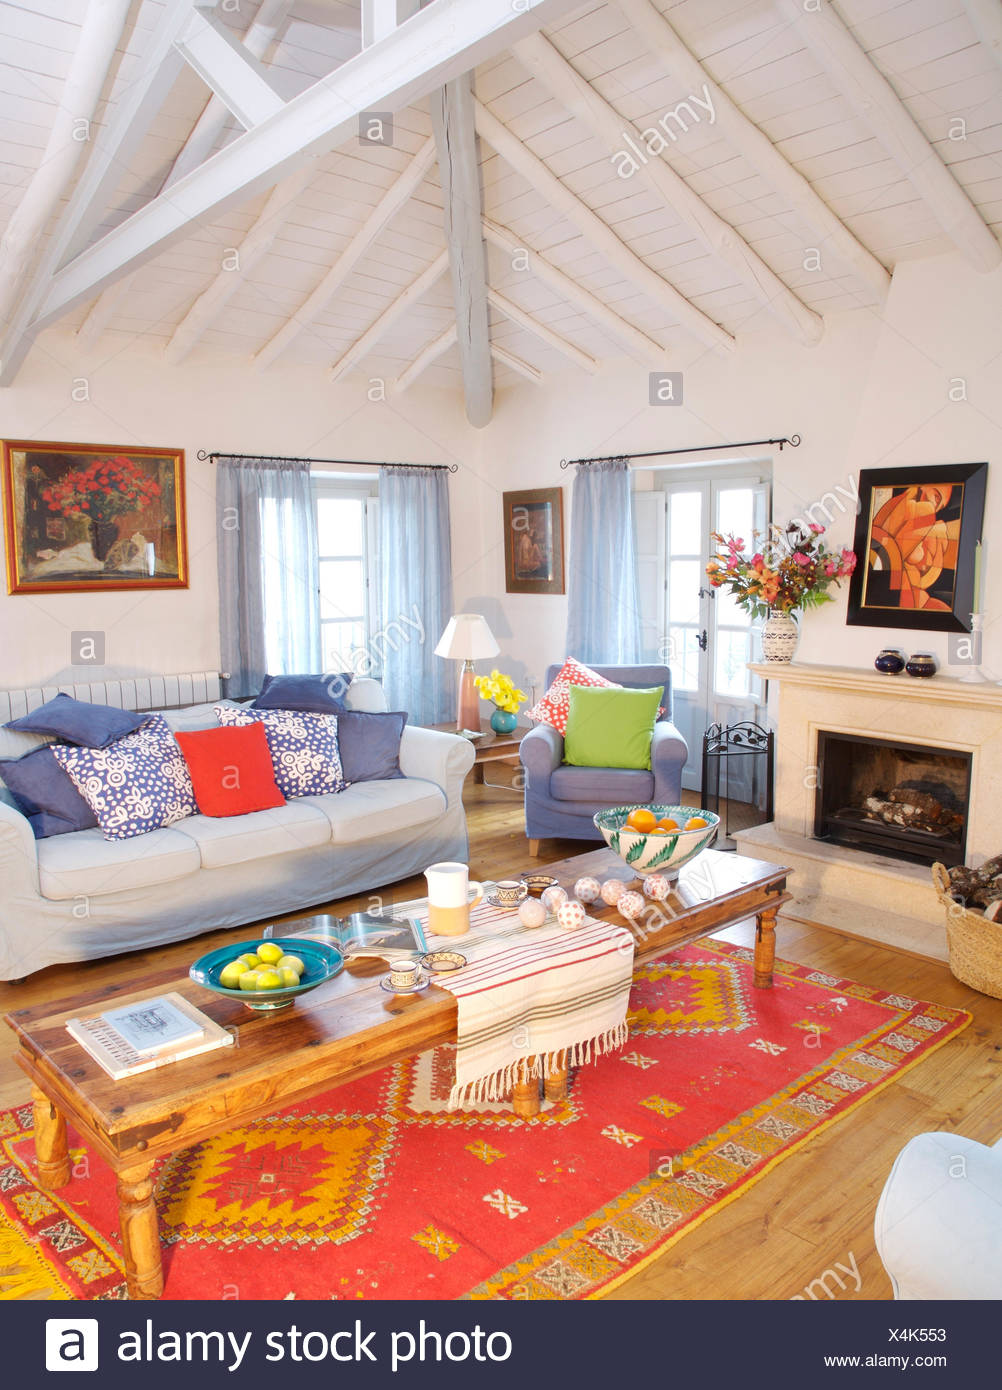 https www alamy com rustic wooden coffee table on red ethnic rug in spanish country living room with white painted beamed ceiling image278245663 html